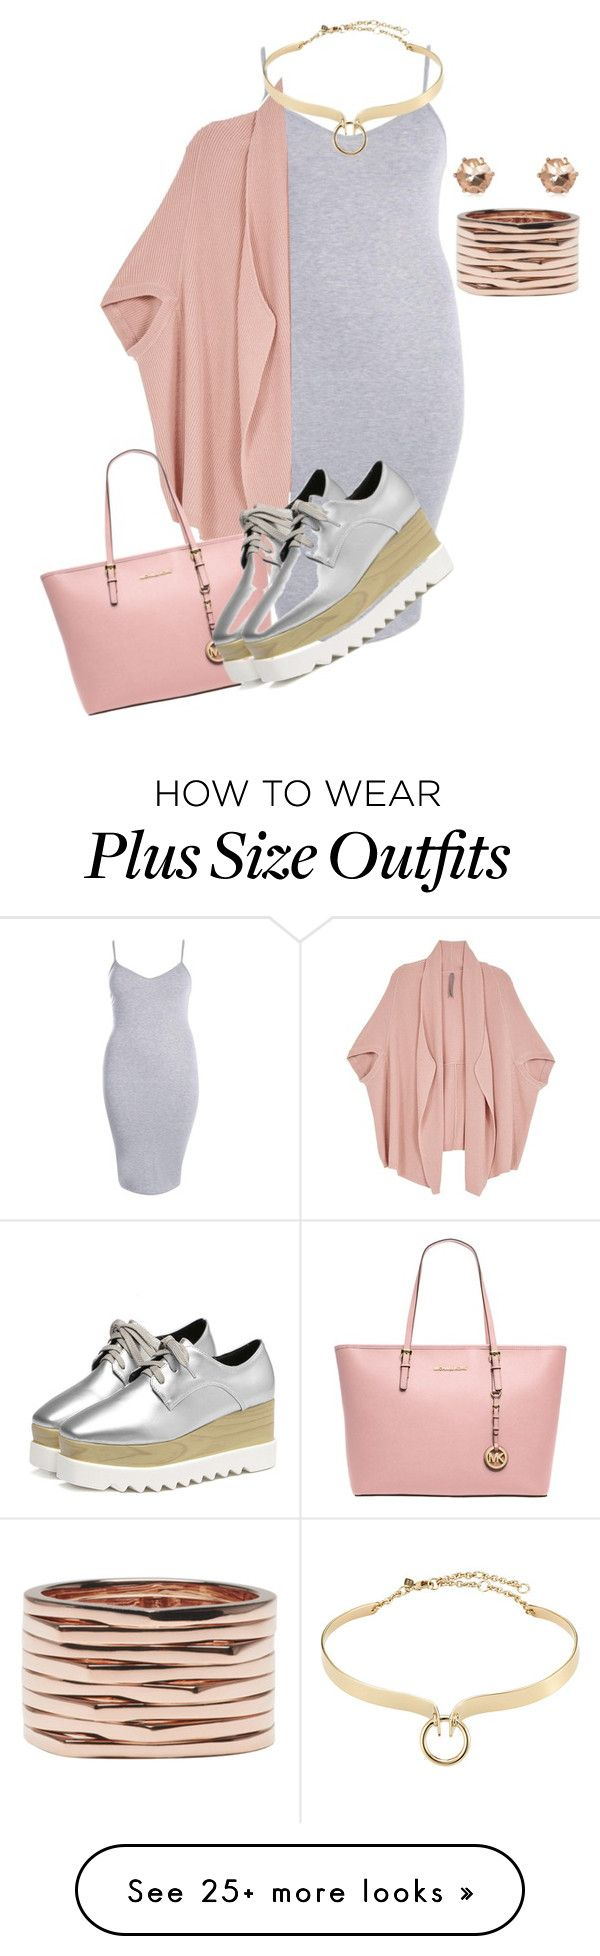 """""""Plus size pretty and chic"""" by xtrak on Polyvore featuring Boohoo, Melissa McCarthy Seven7, MICHAEL Michael Kors, Alexis Bittar, Repossi and plus size clothing"""